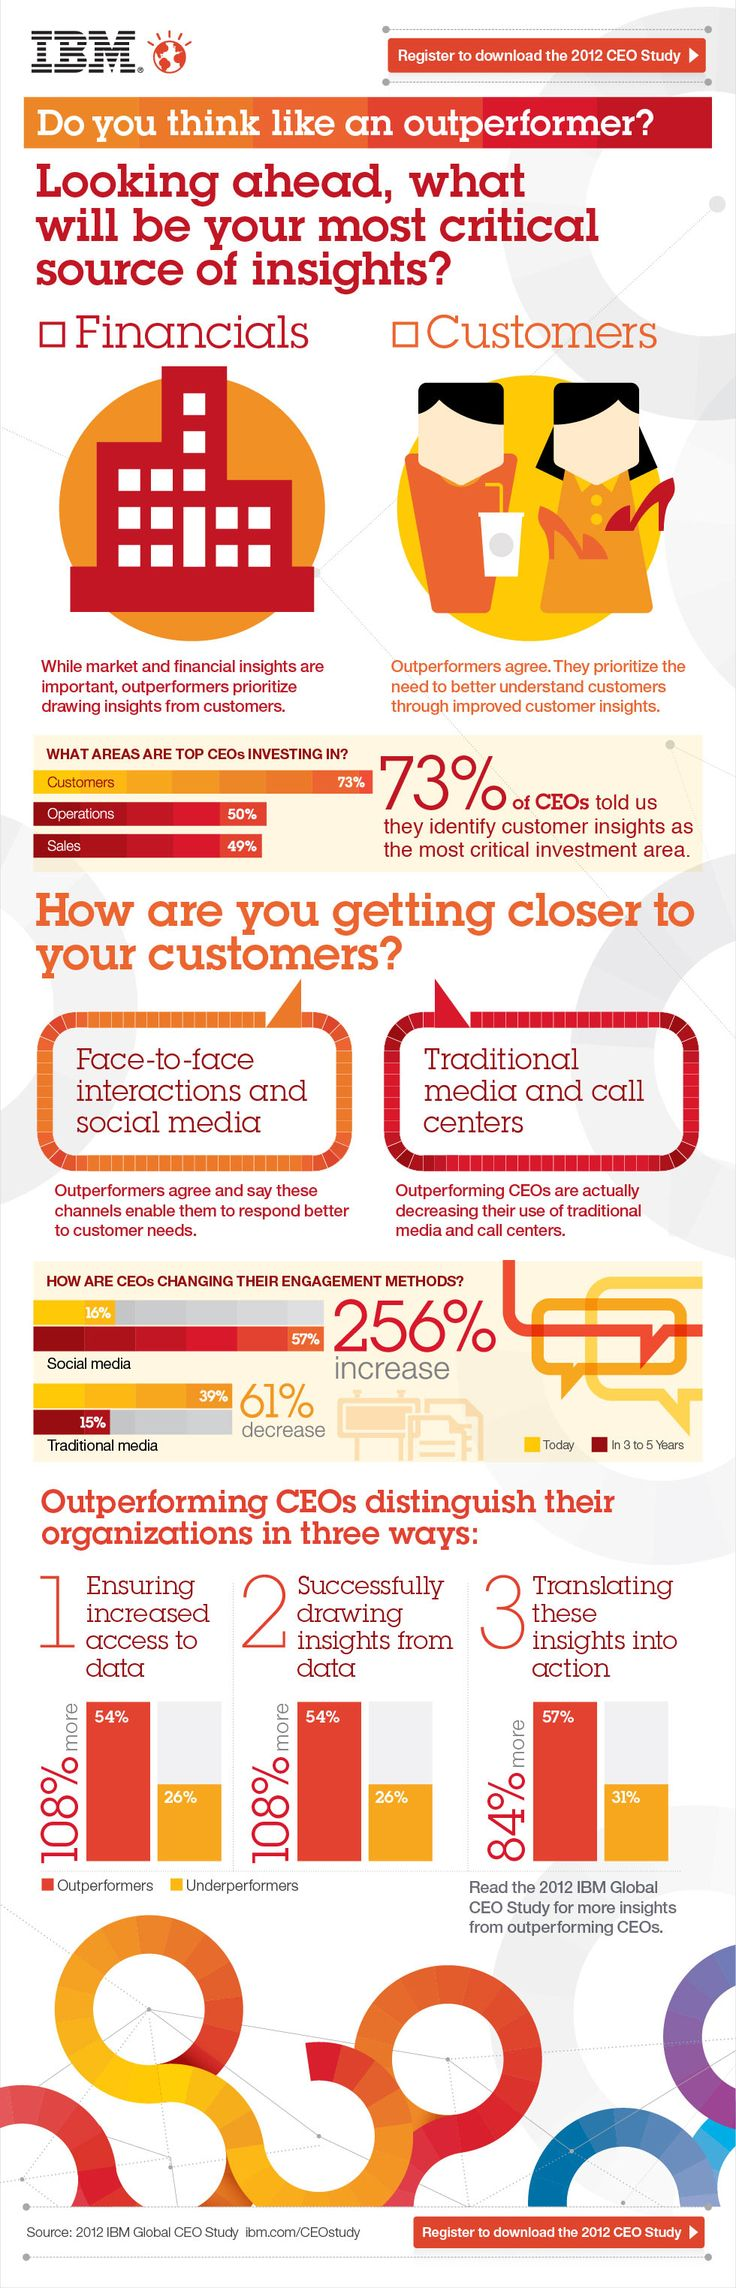 73% of CEOs told us they indentify customer insights as the most critical investment area. Would you agree with them?